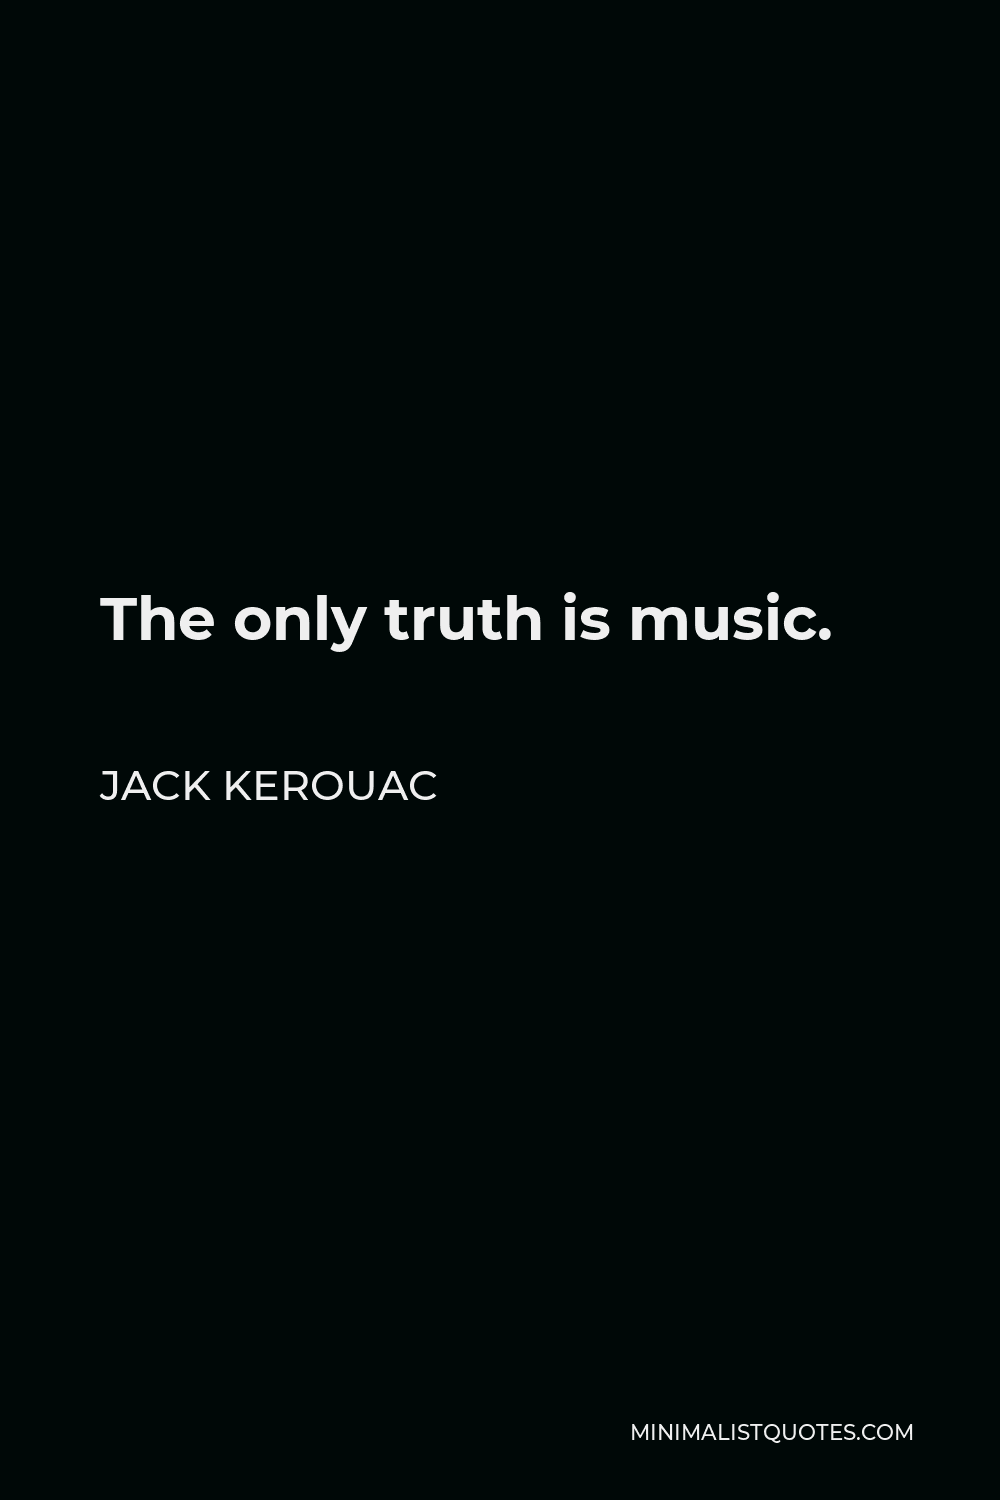 Jack Kerouac Quote - The only truth is music.